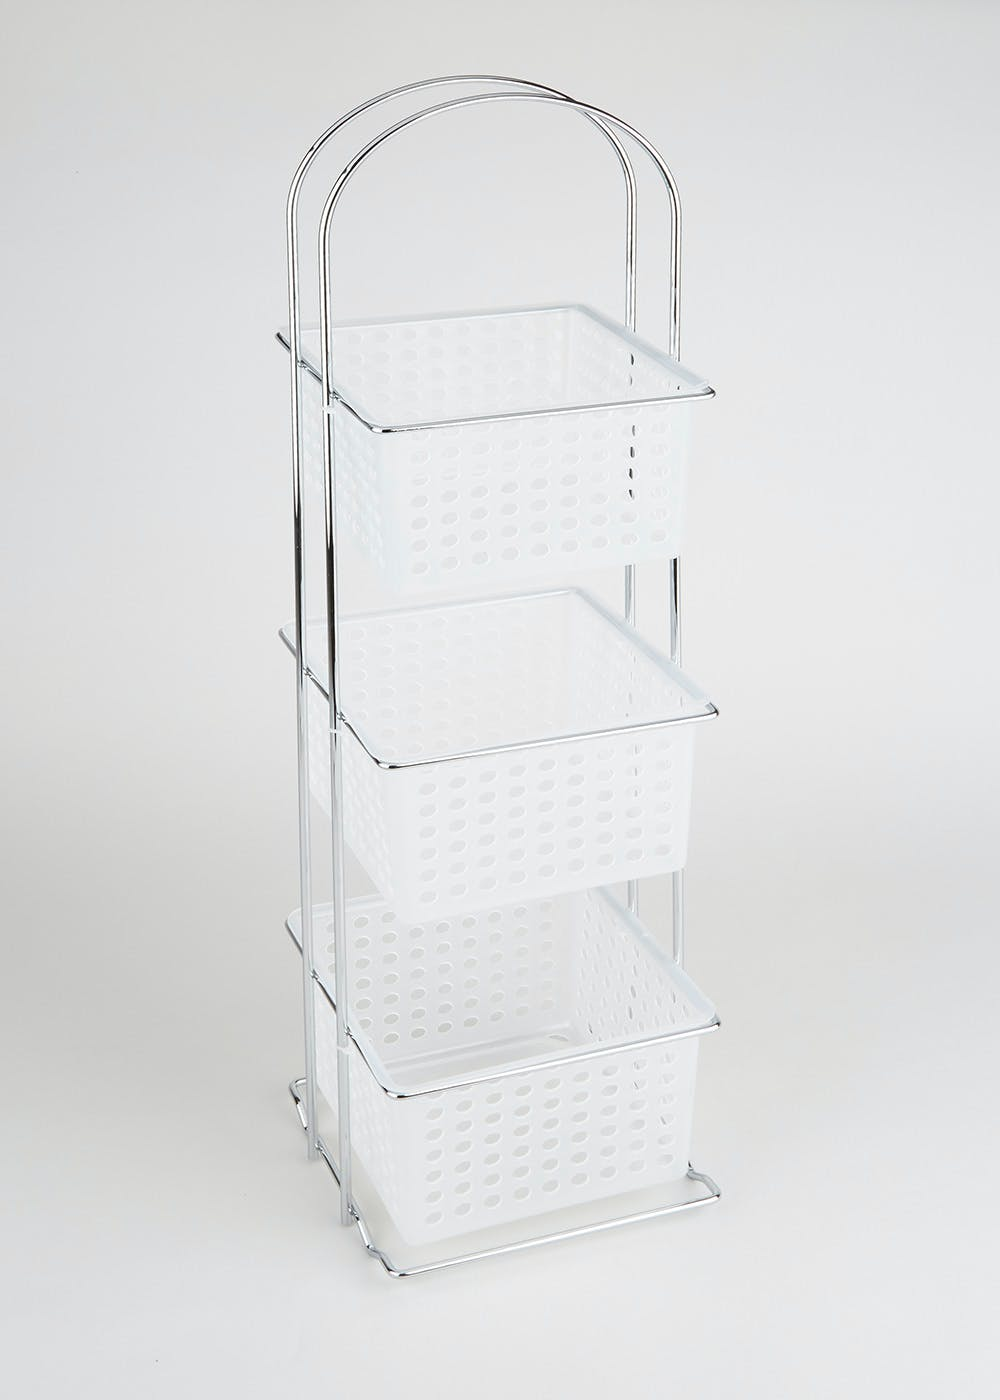 3 Tier Bathroom Caddy (84cm x 19cm x 19cm)